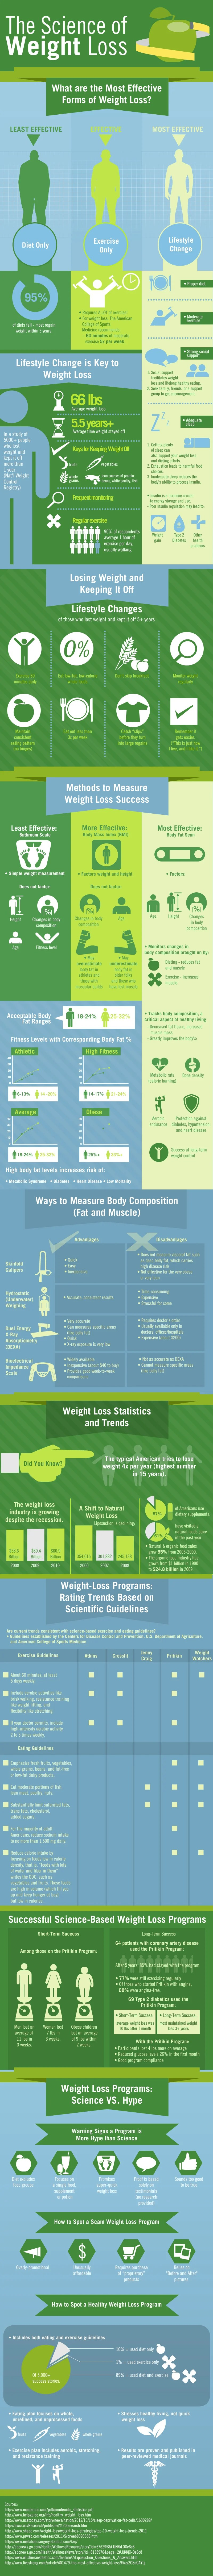 The Science of Weight Loss [Infographic]